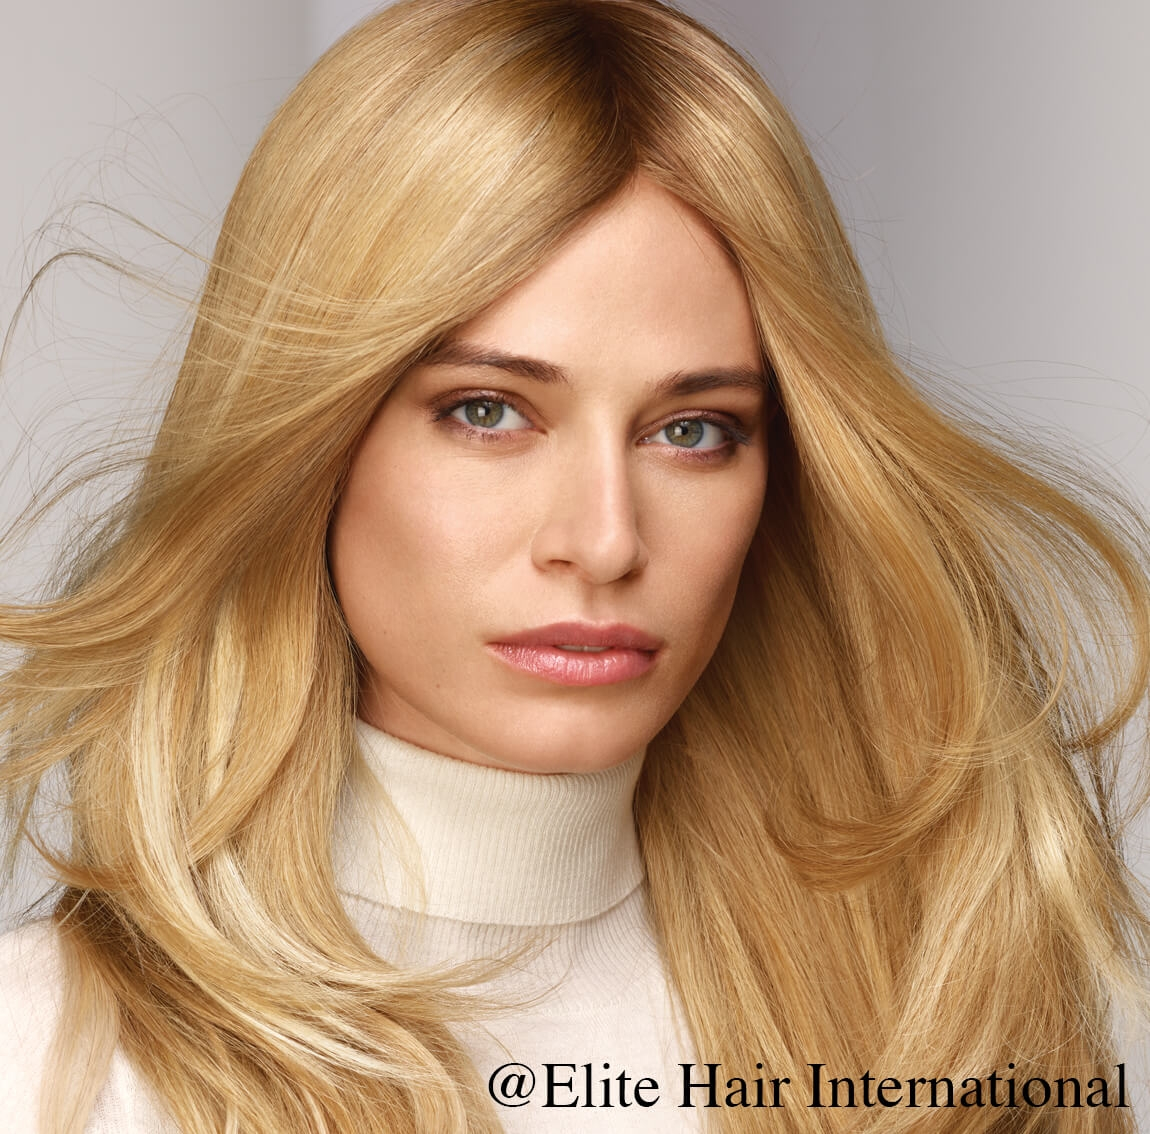 Portrait d'une femme portant la perruque Sublime, cheveux blonds, perruque en cheveux naturels d'Elite Hair International